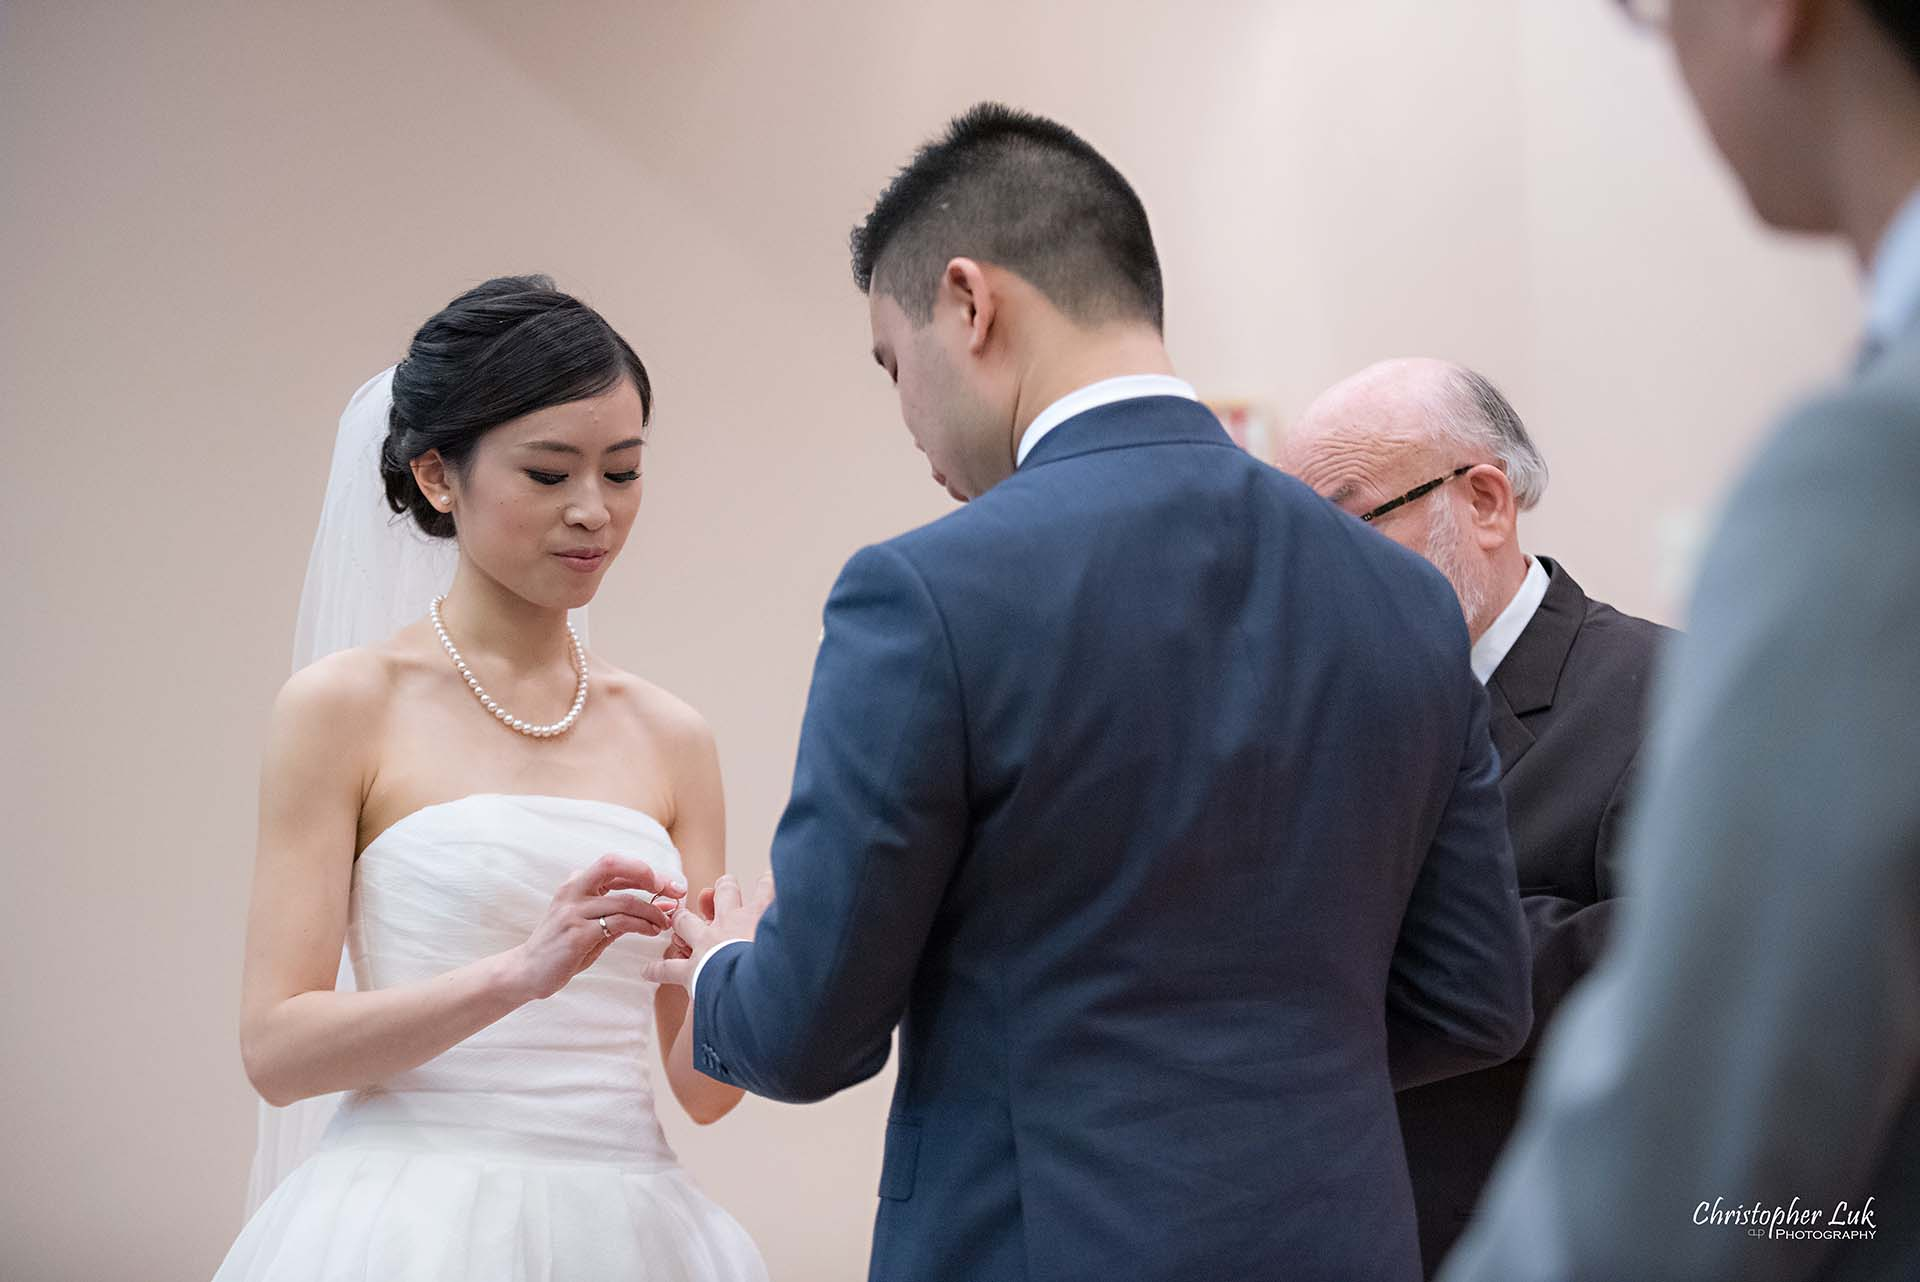 Christopher Luk Toronto Wedding Photographer Chinese Gospel Church Scarborough Ceremony Processional Bride Groom Exchange Rings Bands Vows